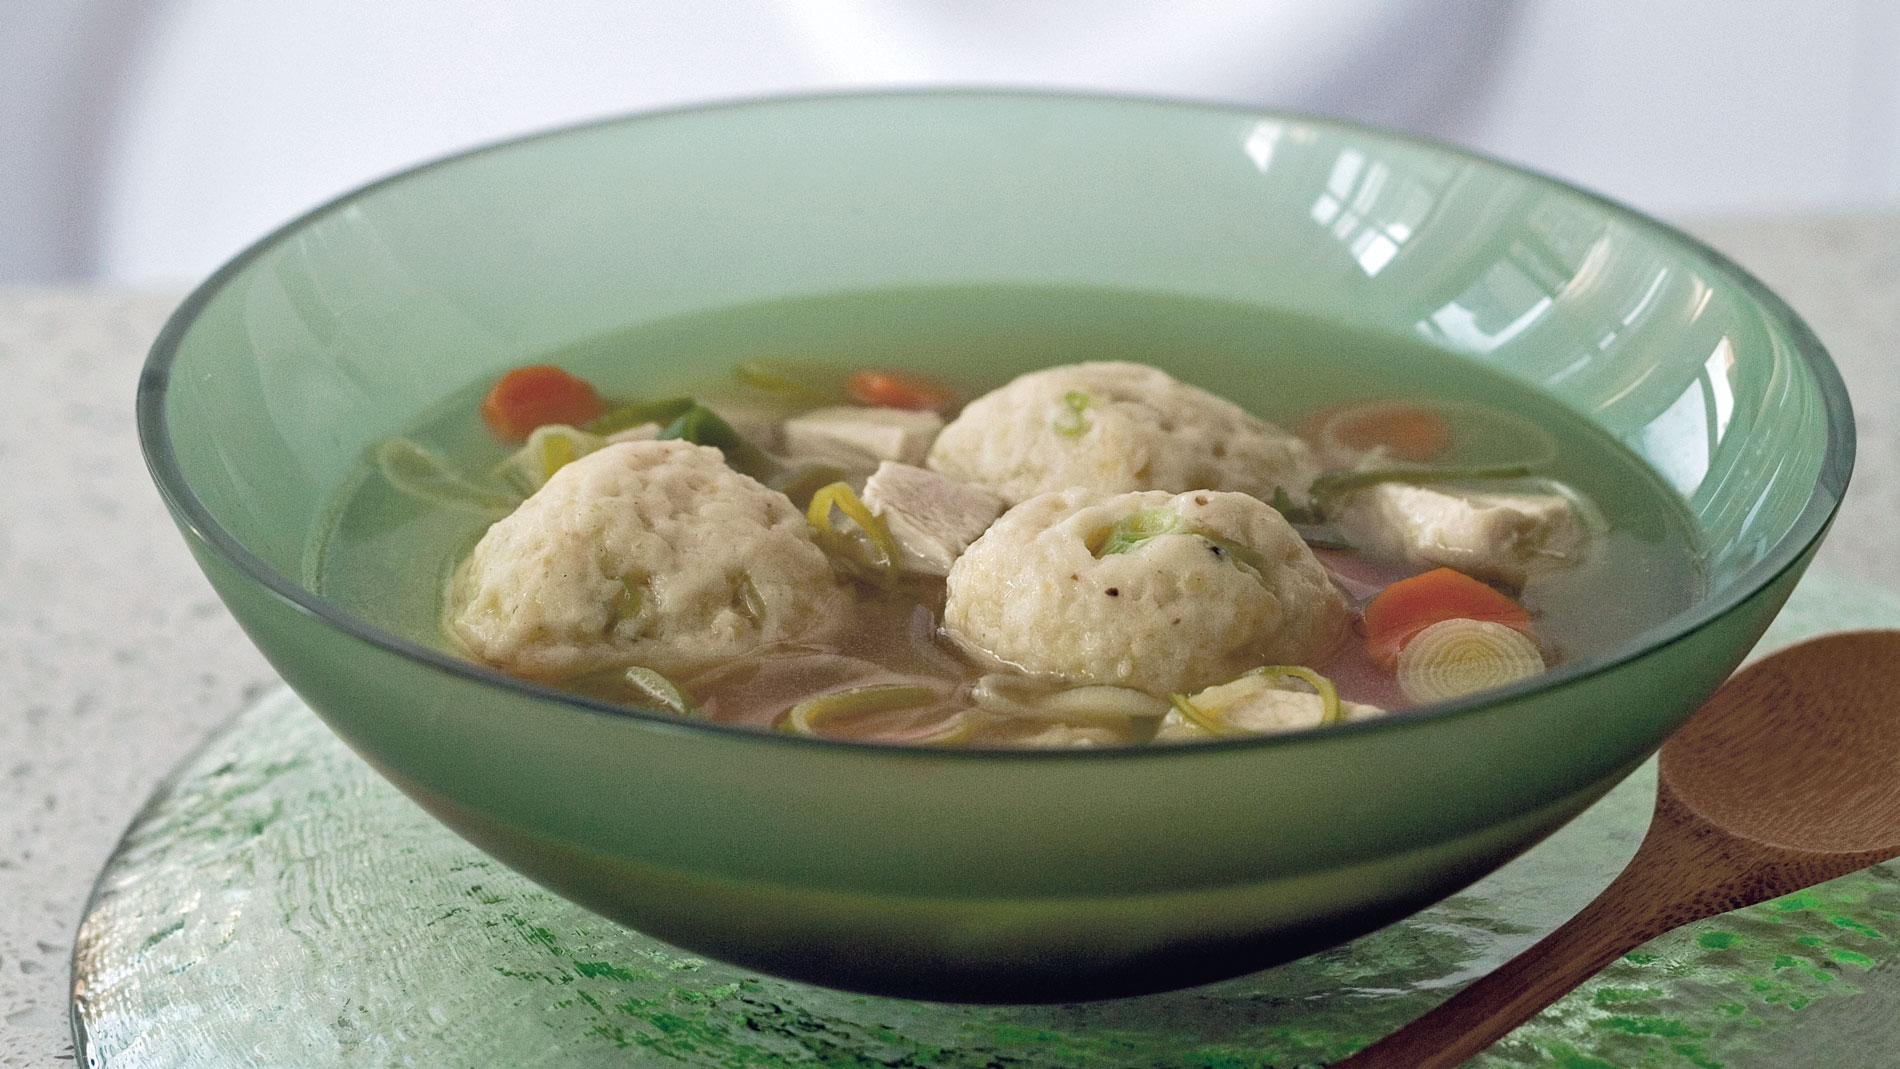 8 Upgraded Passover Dishes